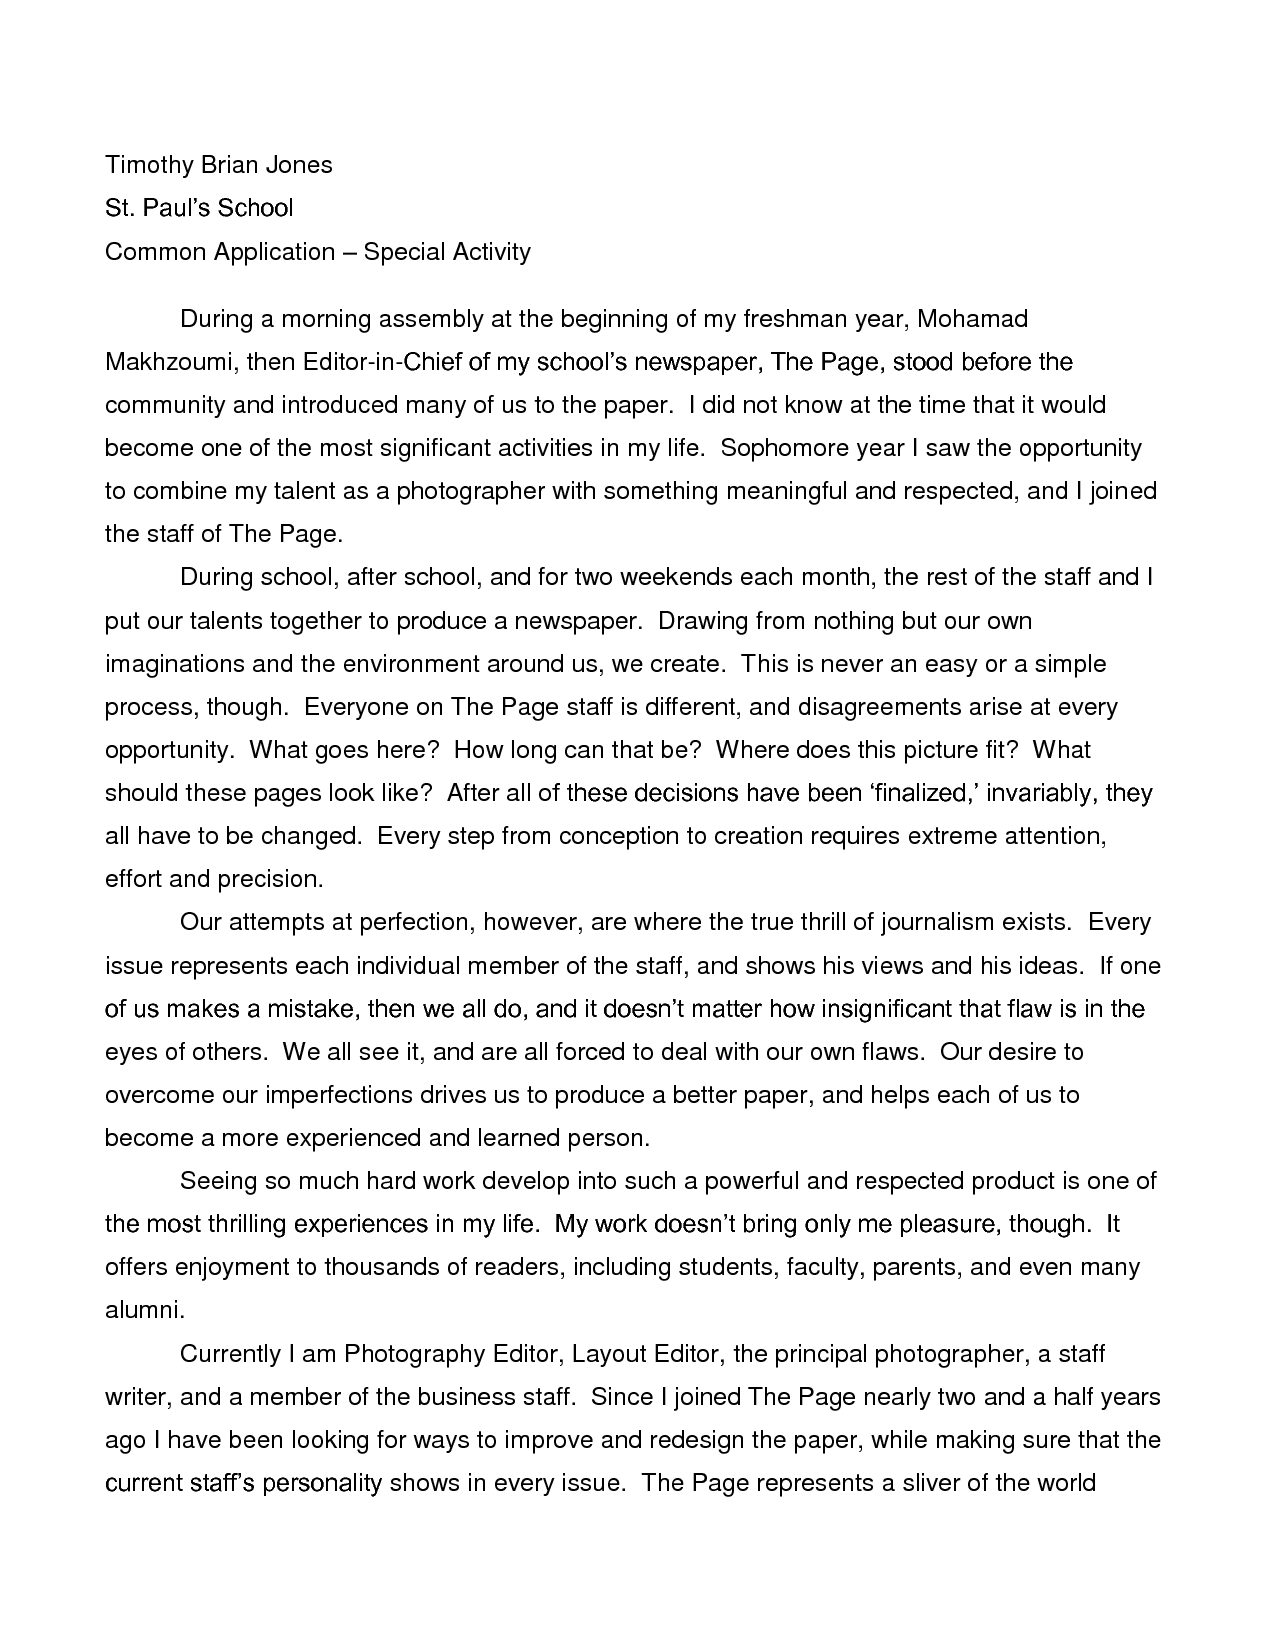 001 Essays For High School Bm4a9xkecf Unique Essay Examples Personal Statement Sample 5 Paragraph Argumentative Example Tagalog Full